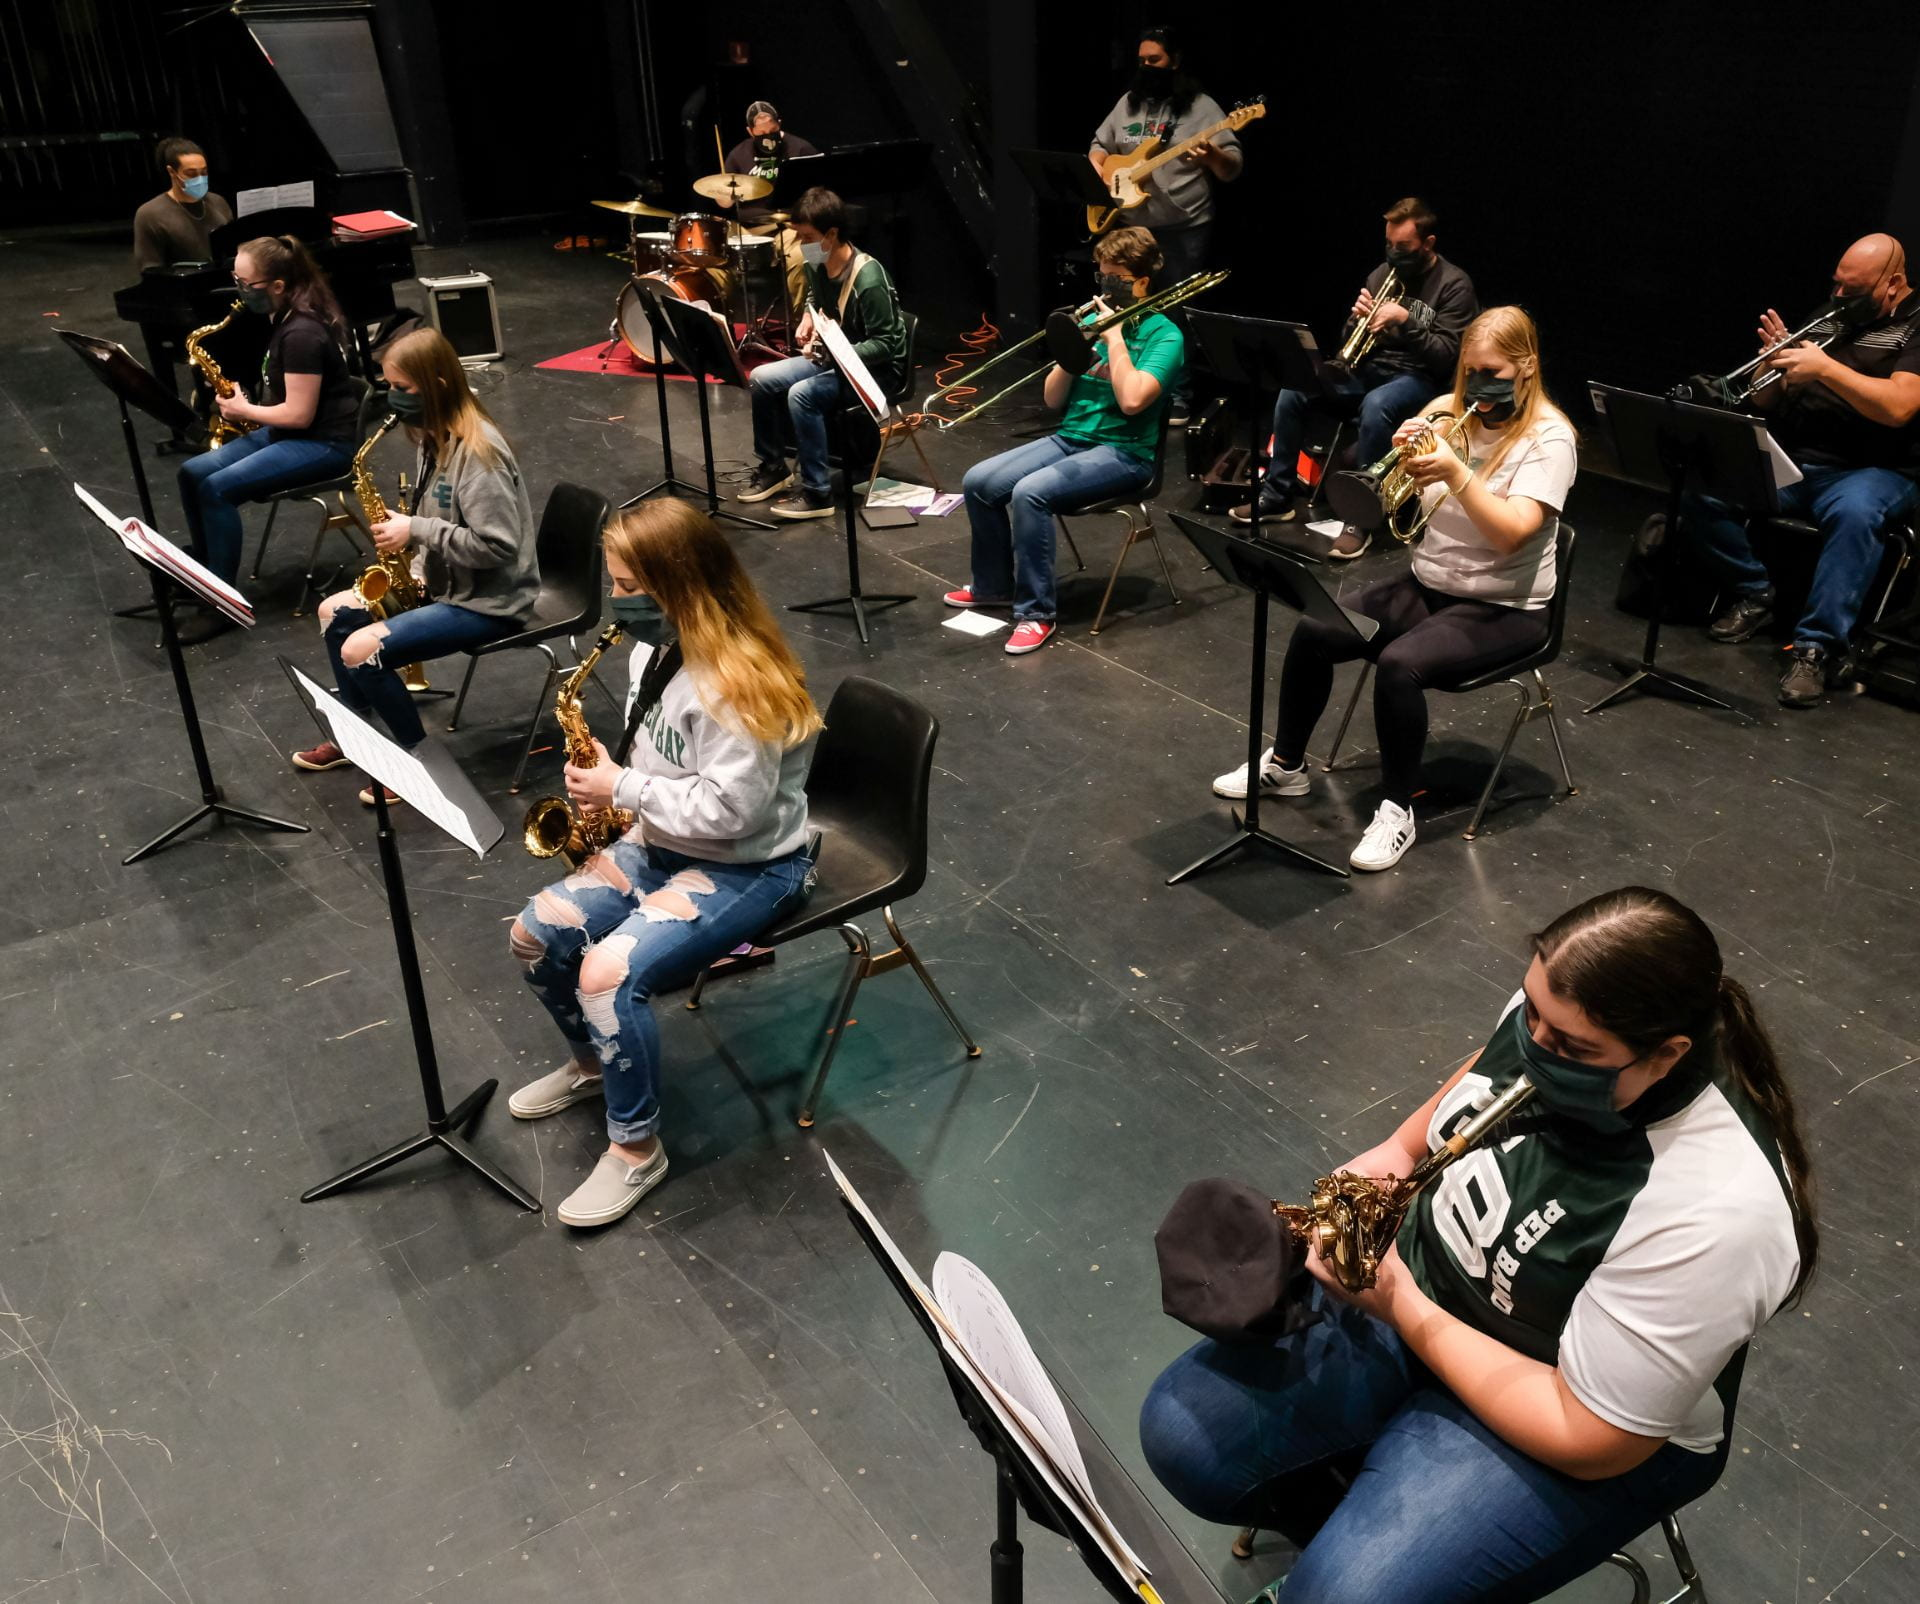 Photo of UW-Green Bay students in Jazz Ensemble class on the main stage at the Weidner Center. Music students use specialized slotted masks, bell covers on brass instruments, and sit 6-feet apart as part of the COVID-19 prevention.